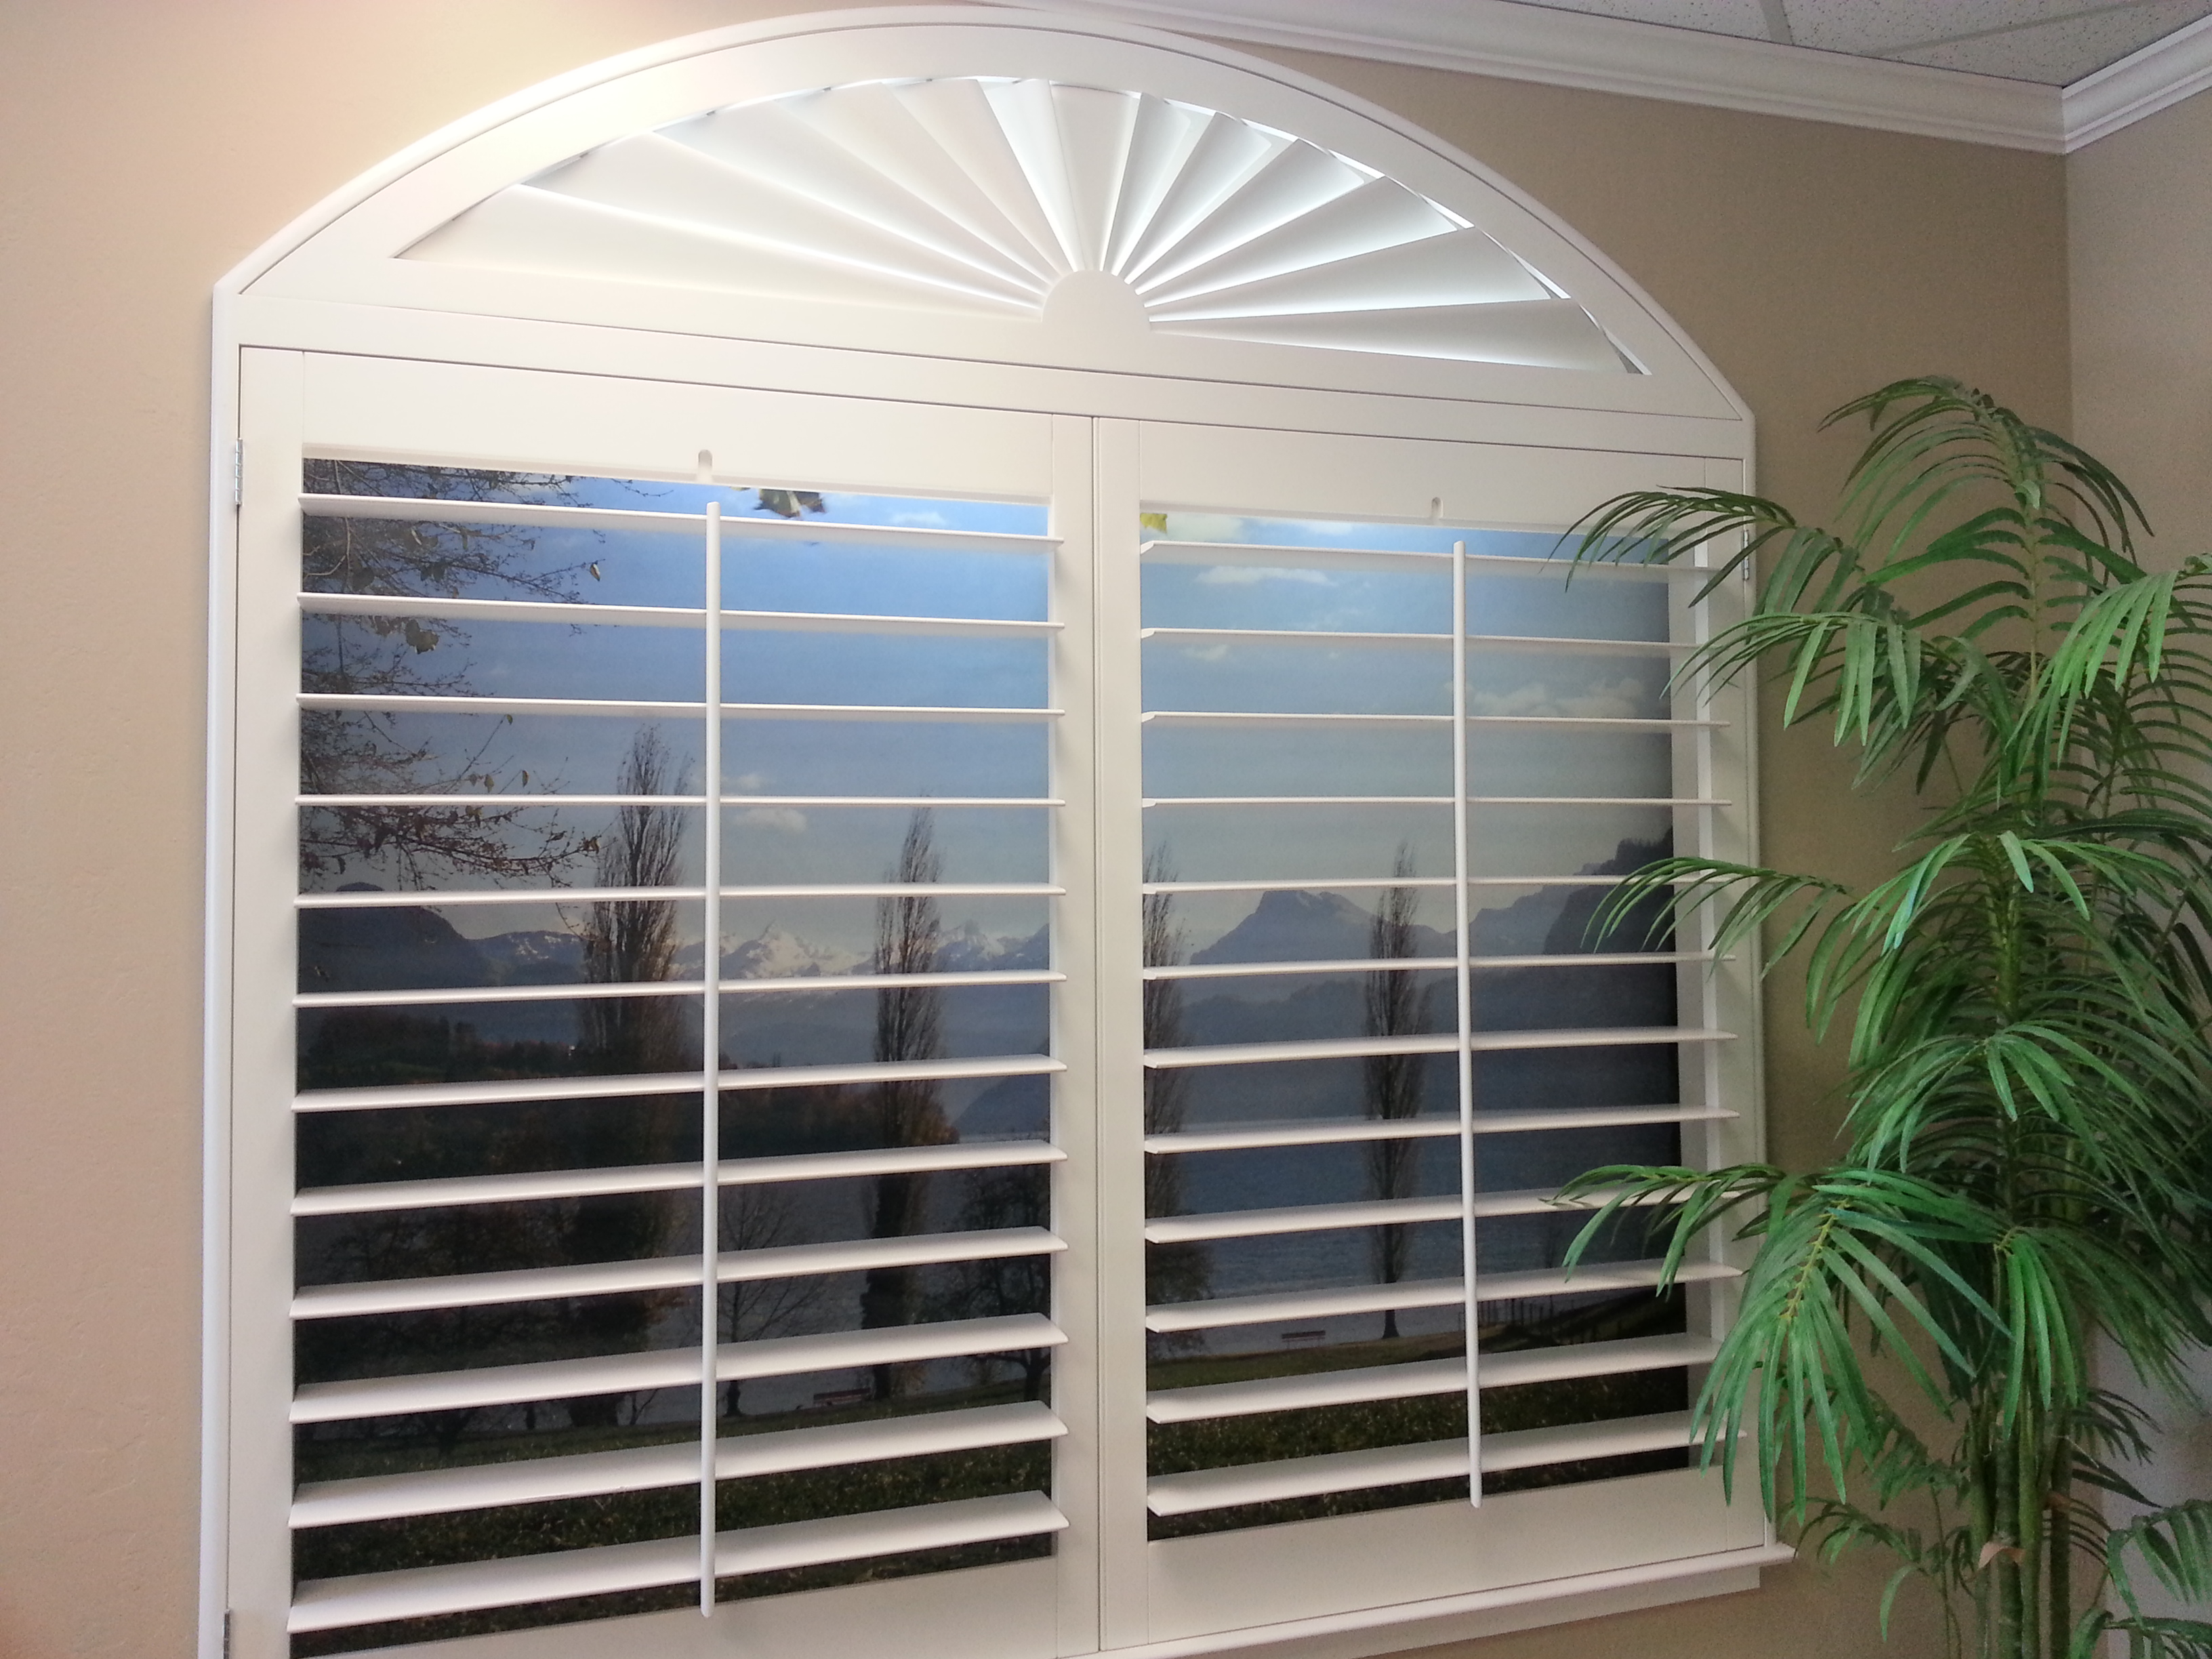 Window Shutters Interior Images Inside Window Shutters Bathroom Window Shutters Interior 89mm